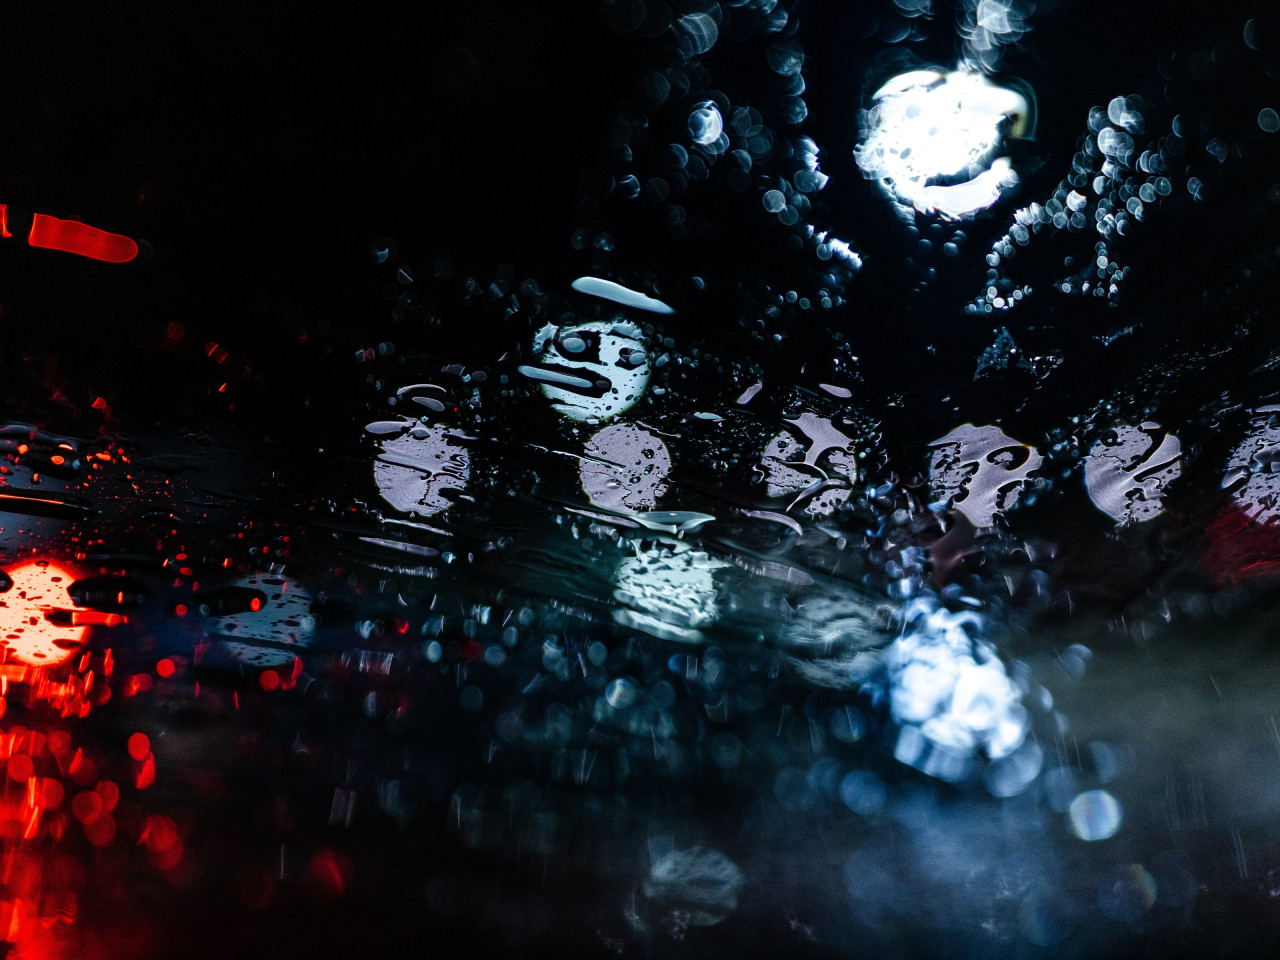 Rainy nights wallpaper 1280x960